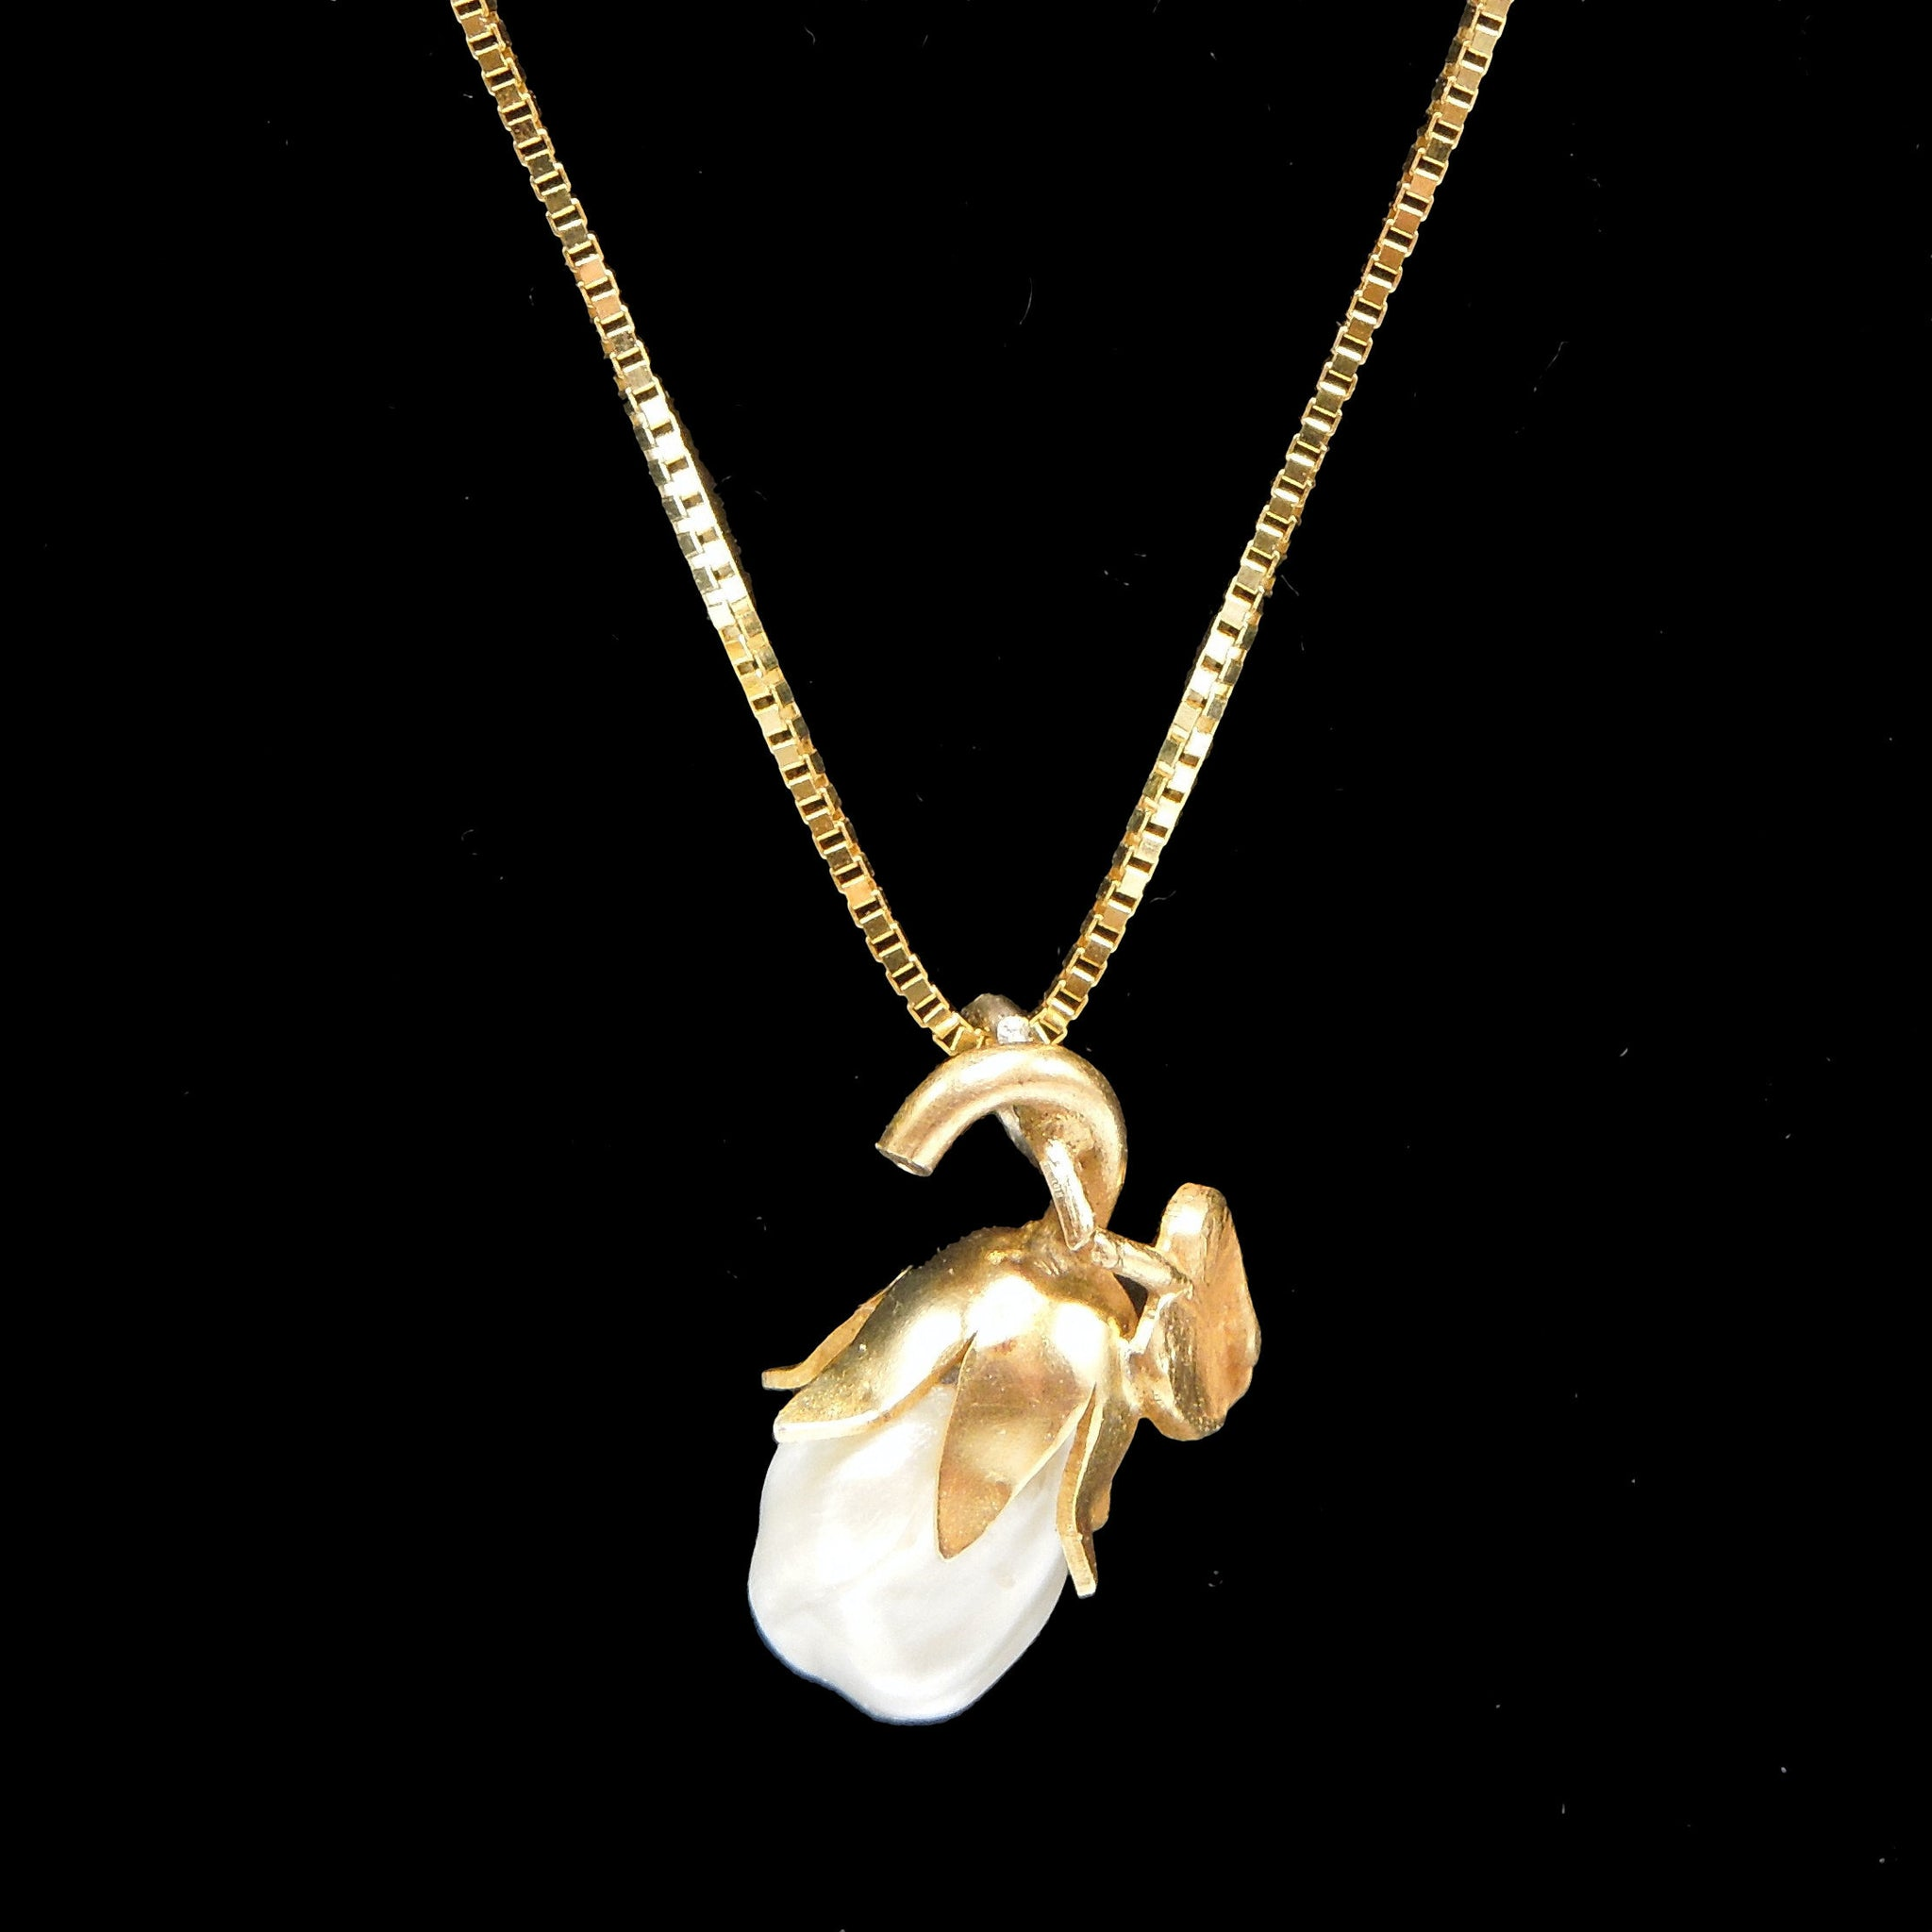 Victorian Gold Pear Pendant with Baroque Pearl Necklace